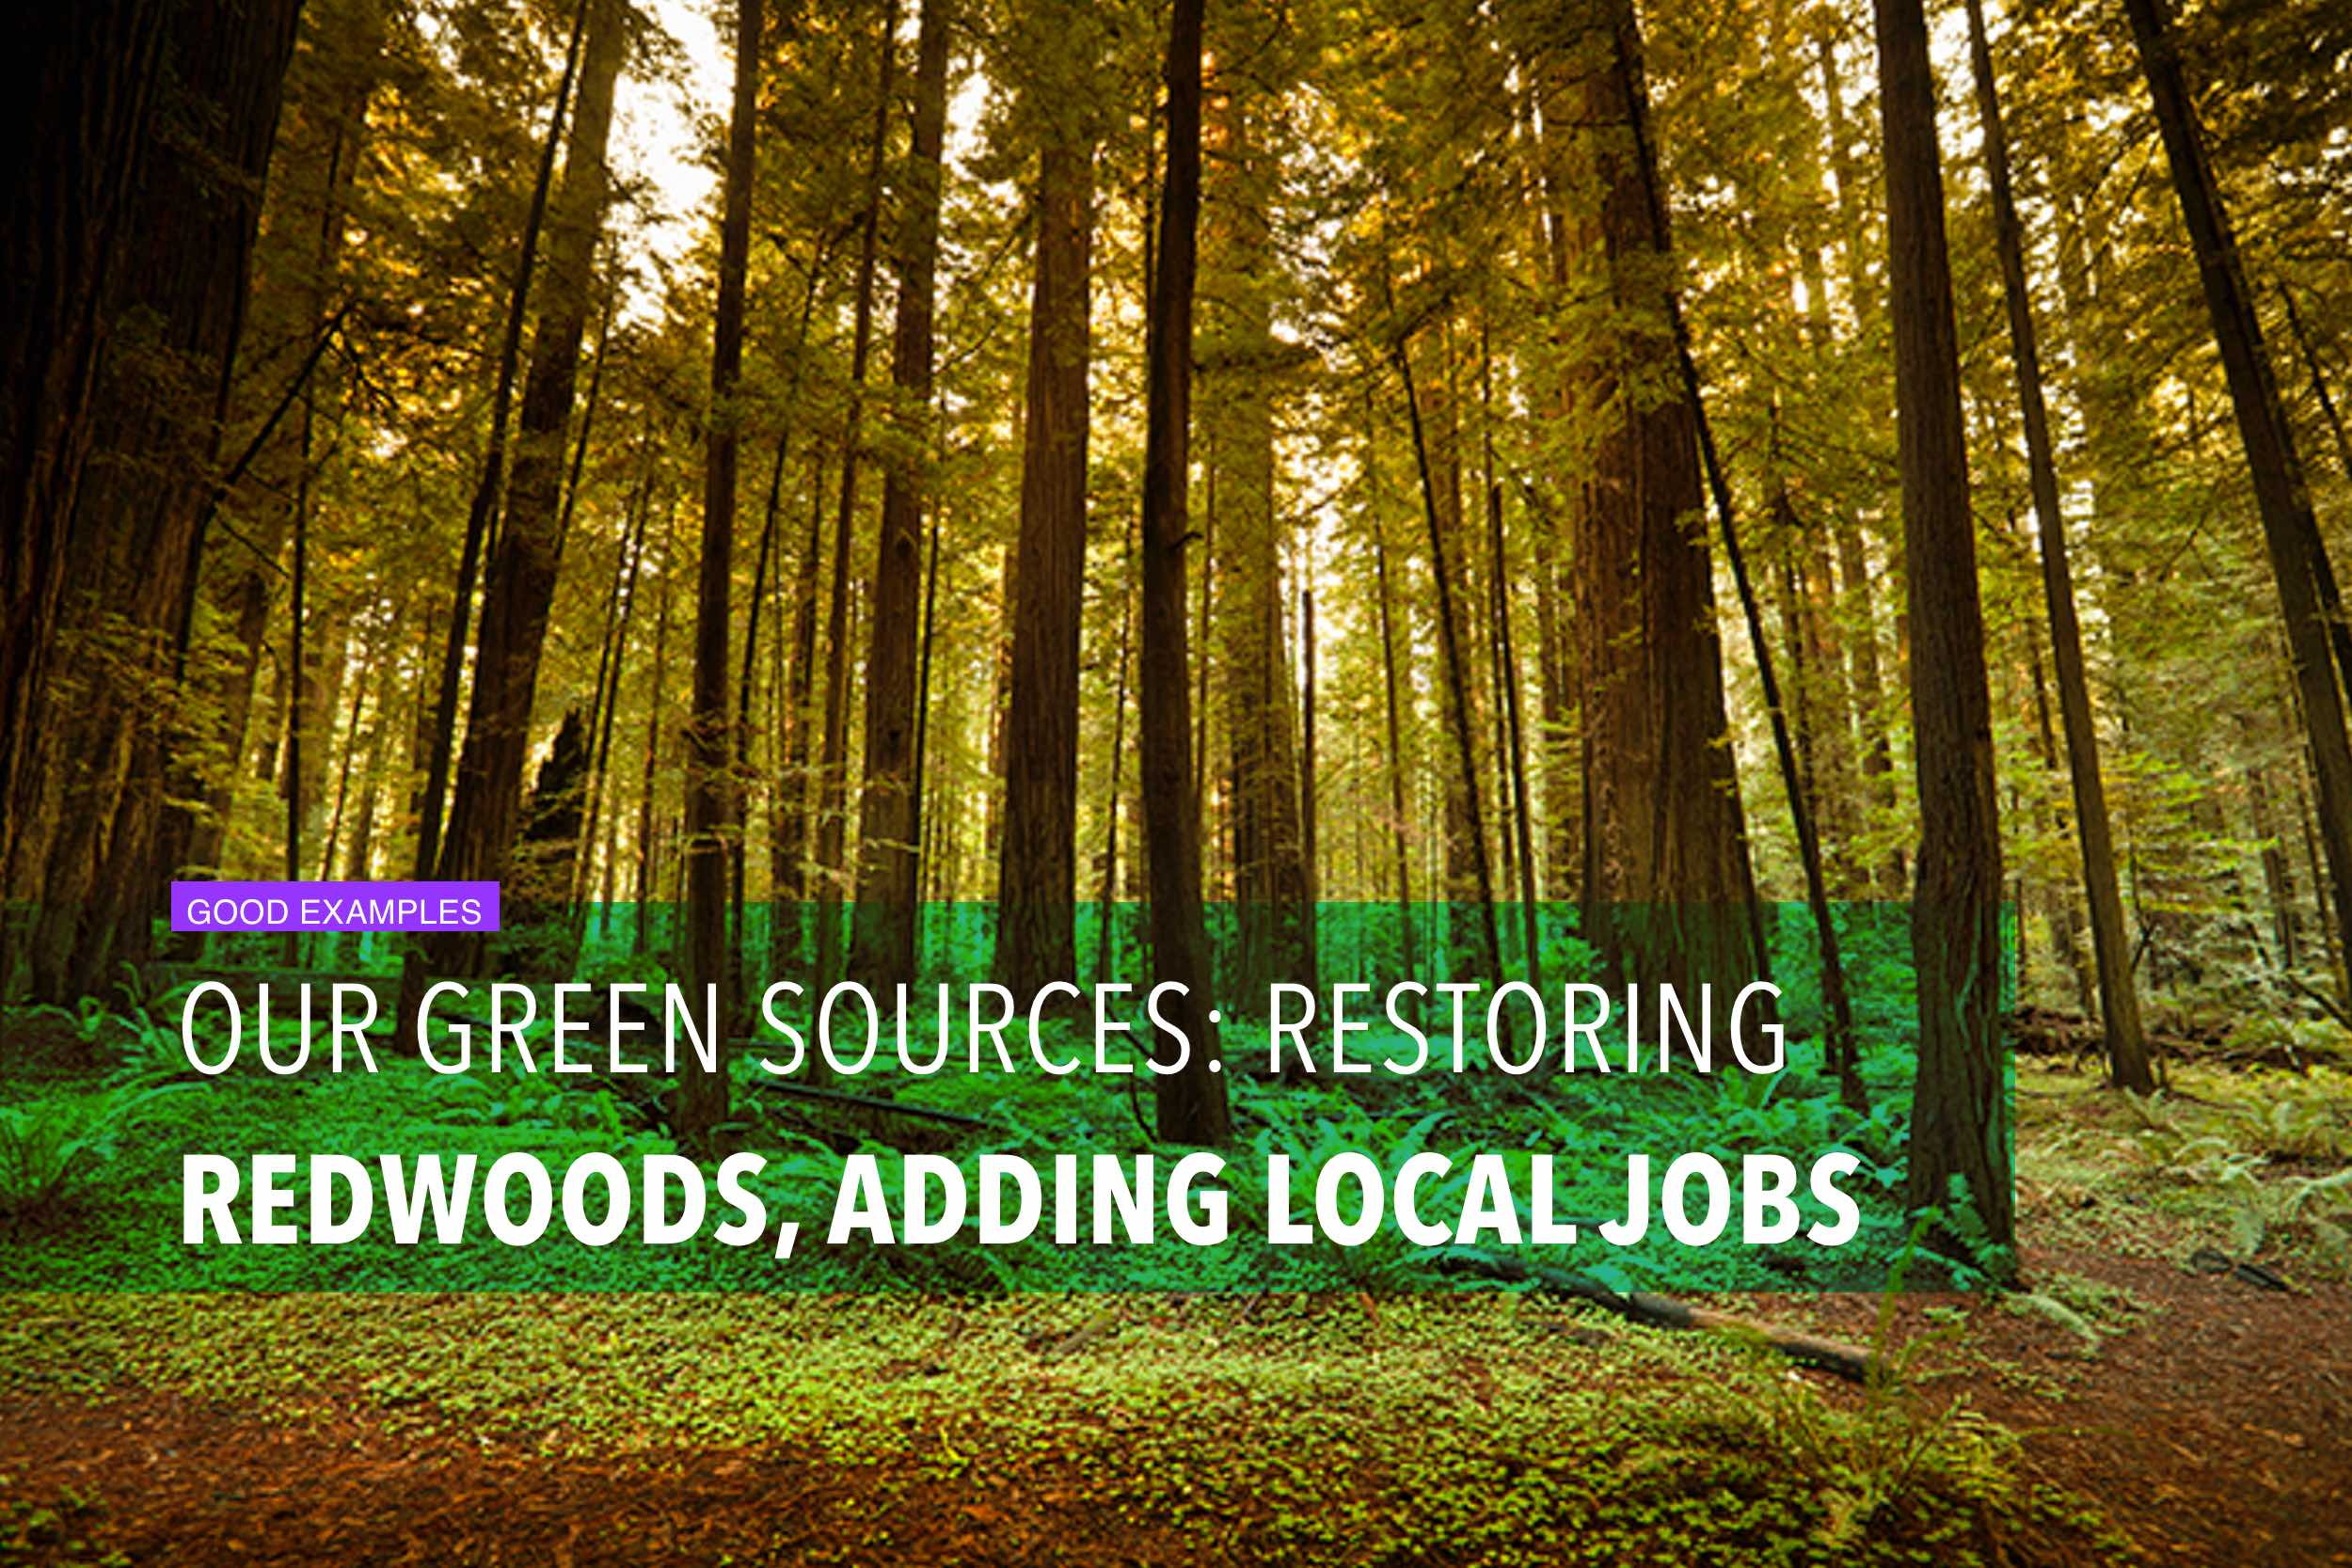 Our green sources: restoring redwoods, adding local jobs